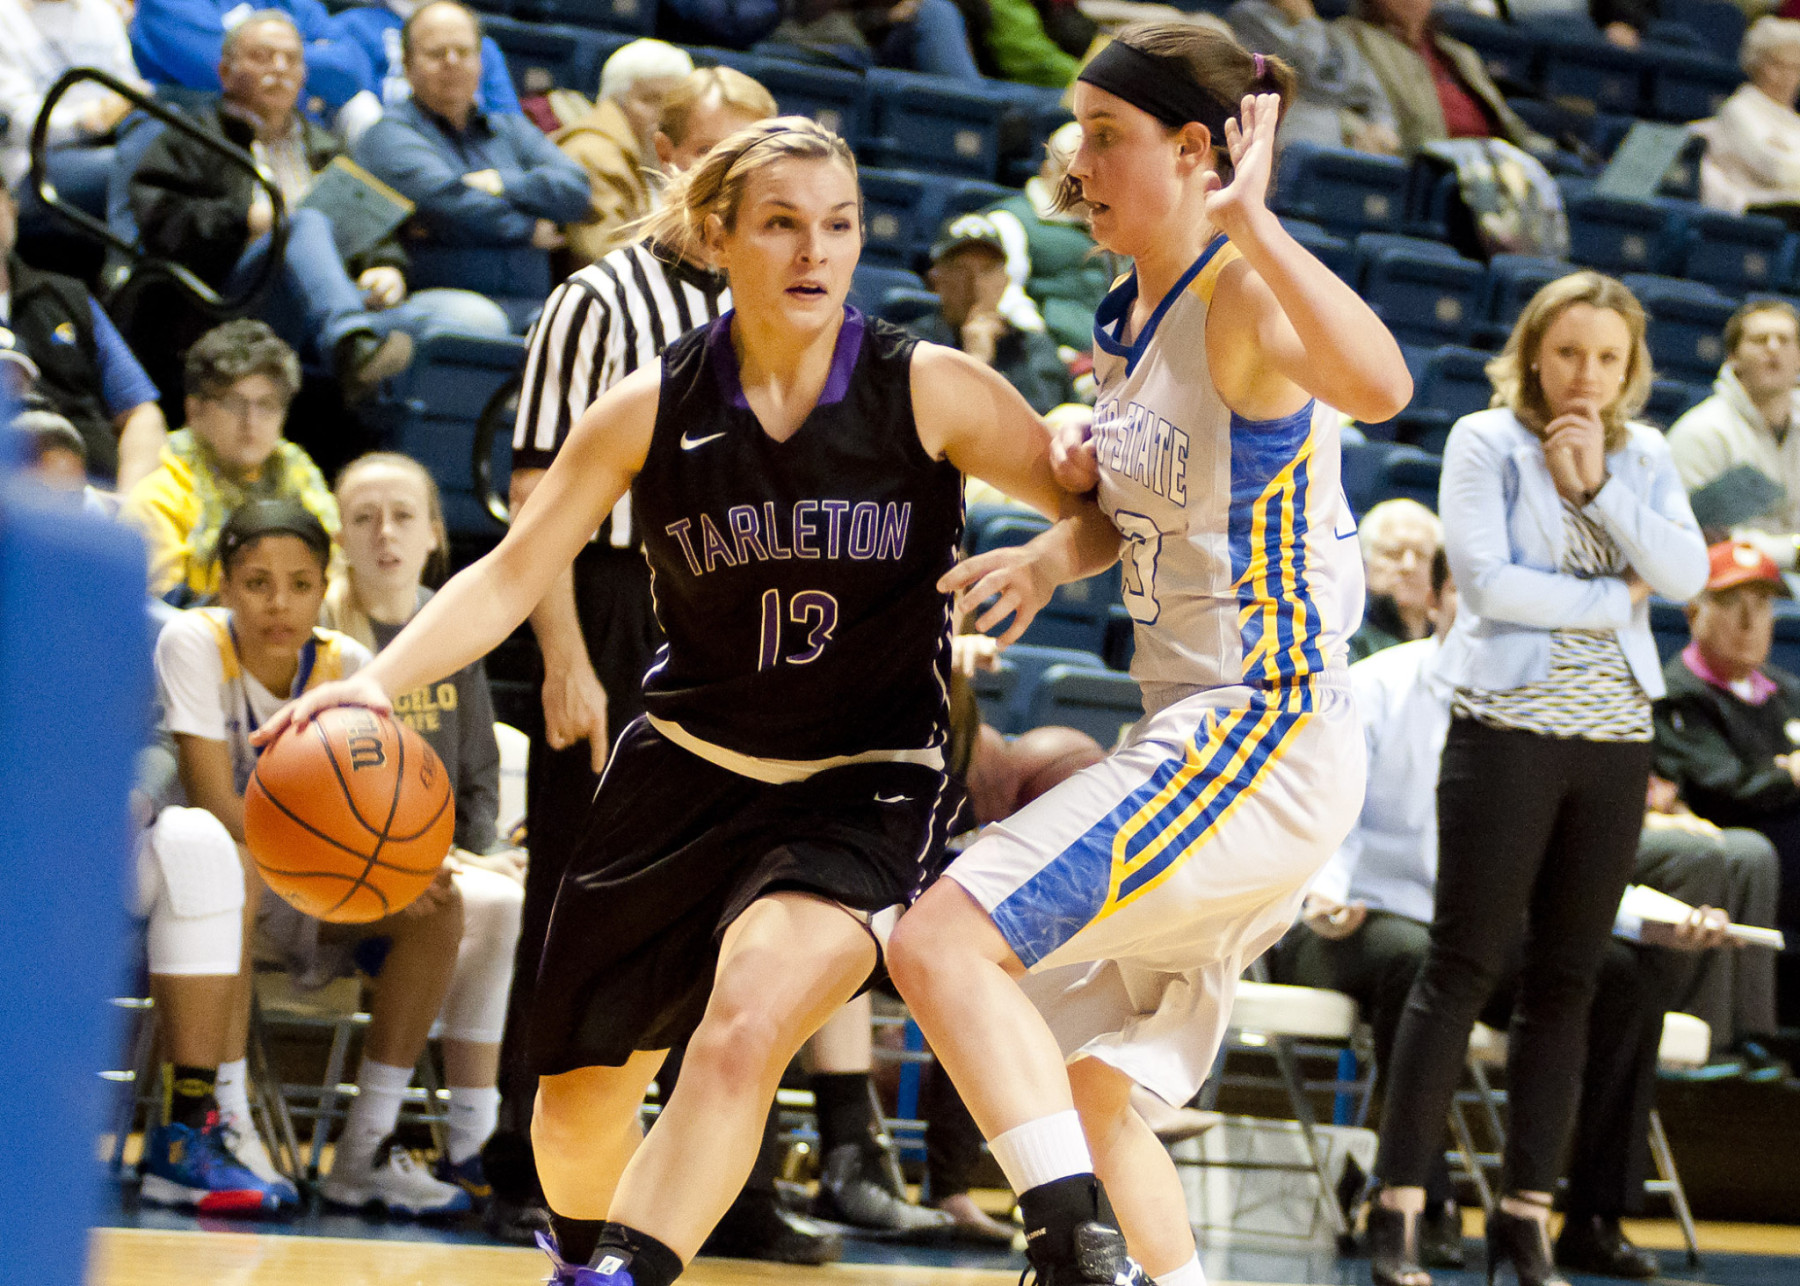 Junior guard Raven McGrath scored a career best 19 points in Tarleton's 81-71 win at Angelo State Wednesday. || Photo courtesy NATHAN BURAL/Tarleton